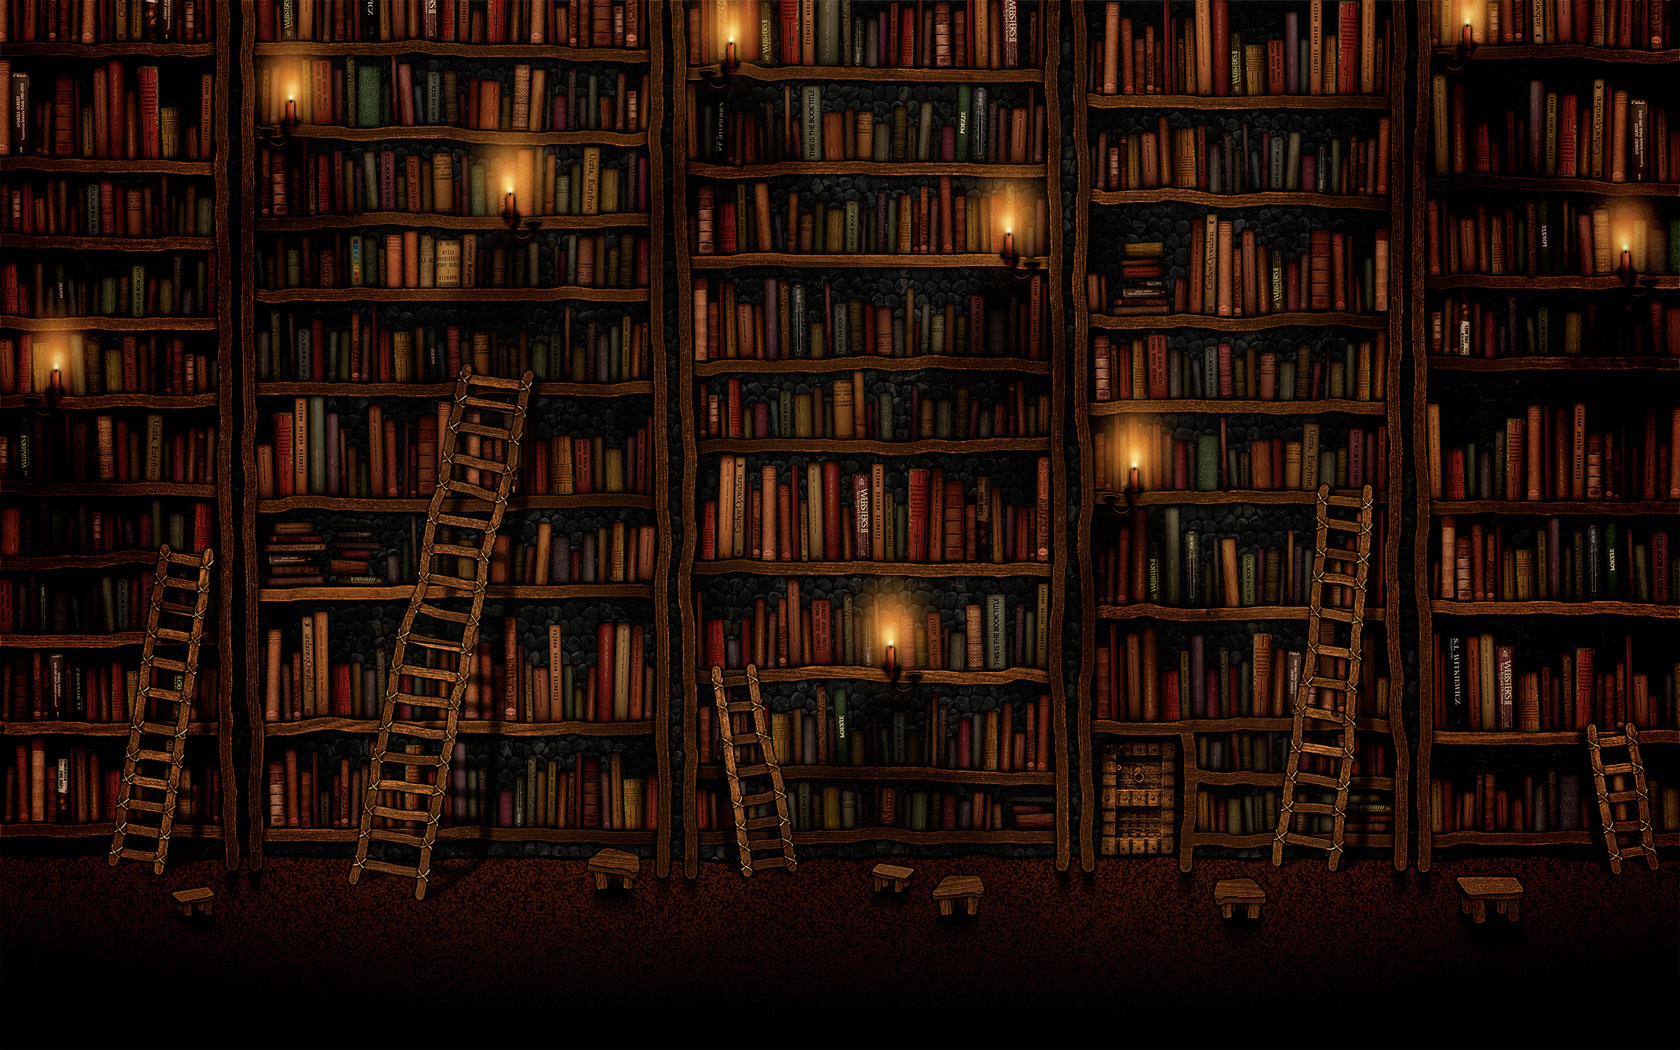 bookshelves_hd_widescreen_wallpapers_1680x1050